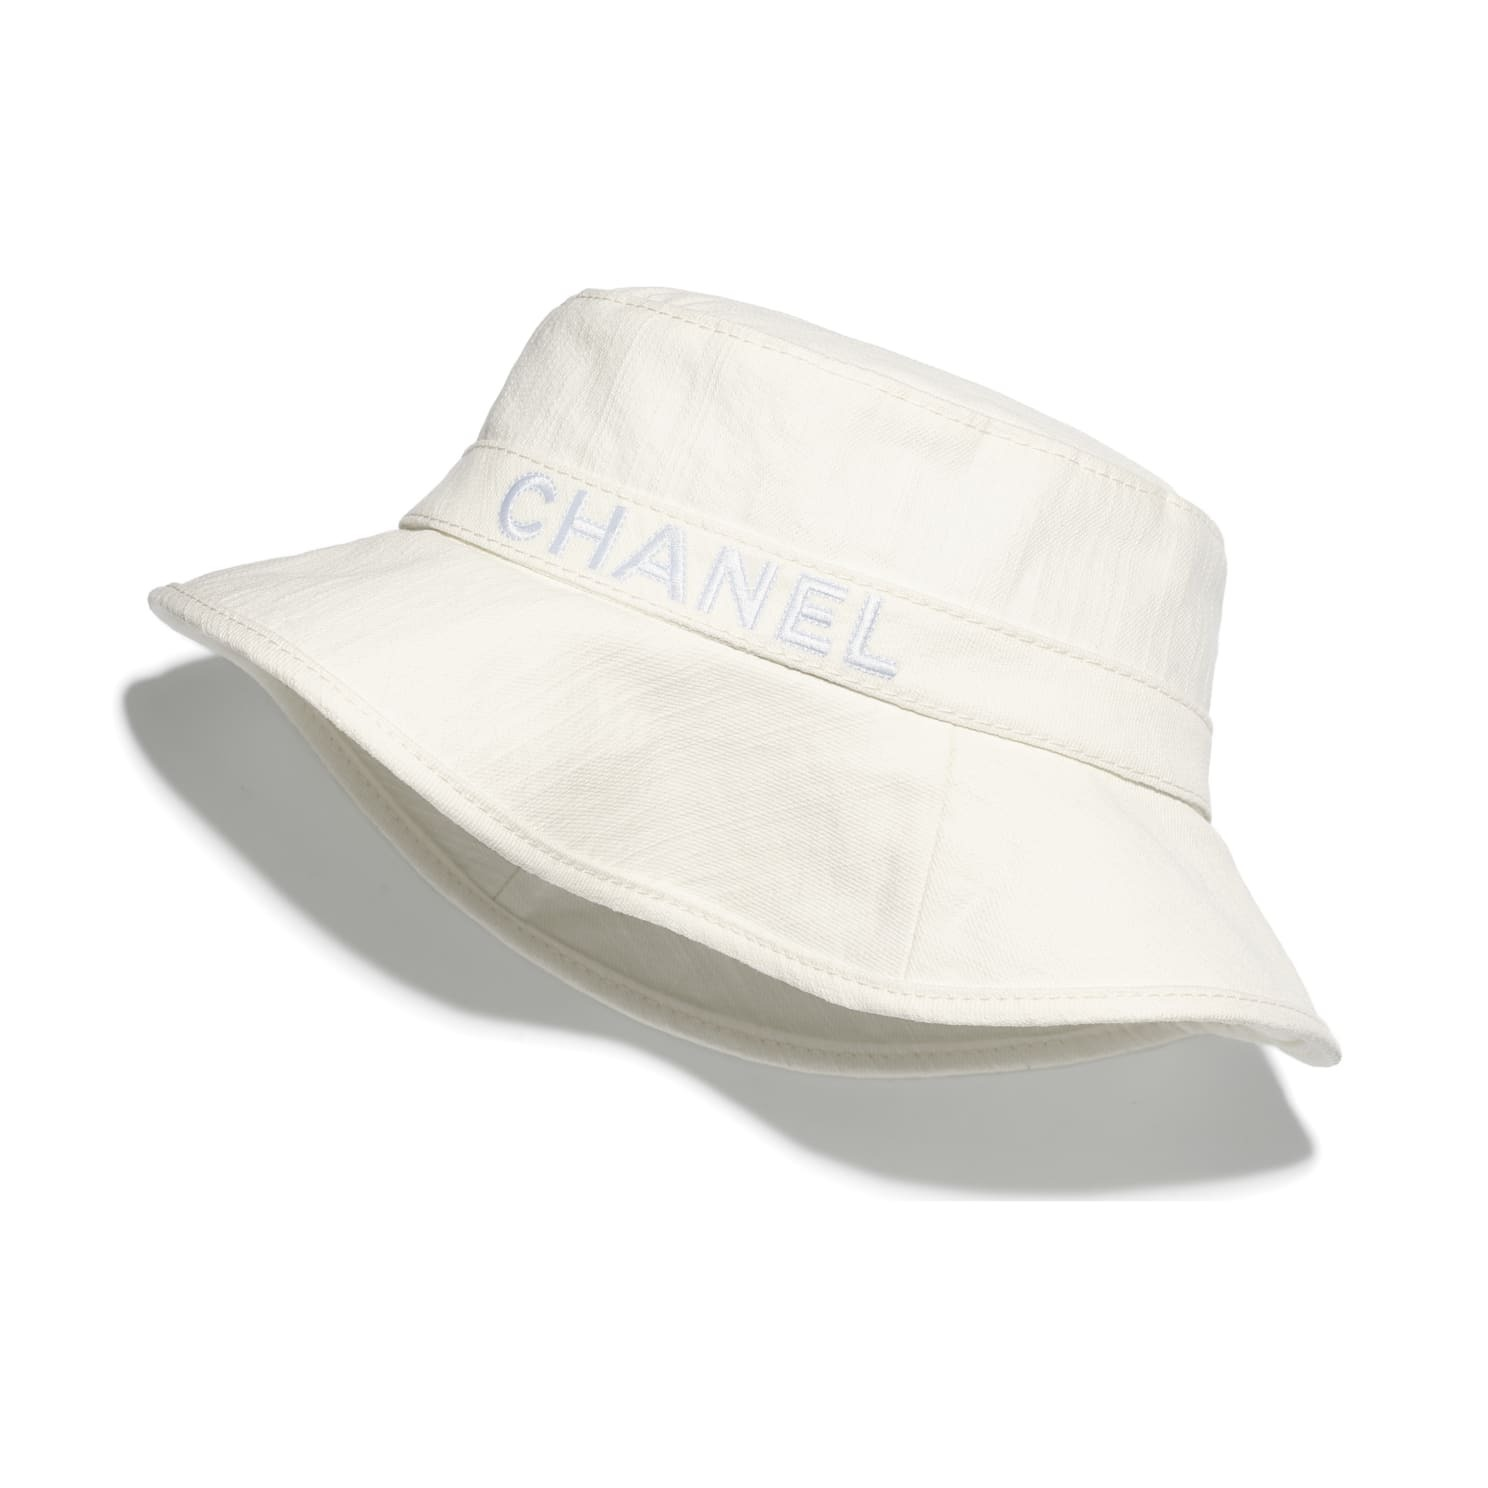 CHANEL Chanel Cotton Hat